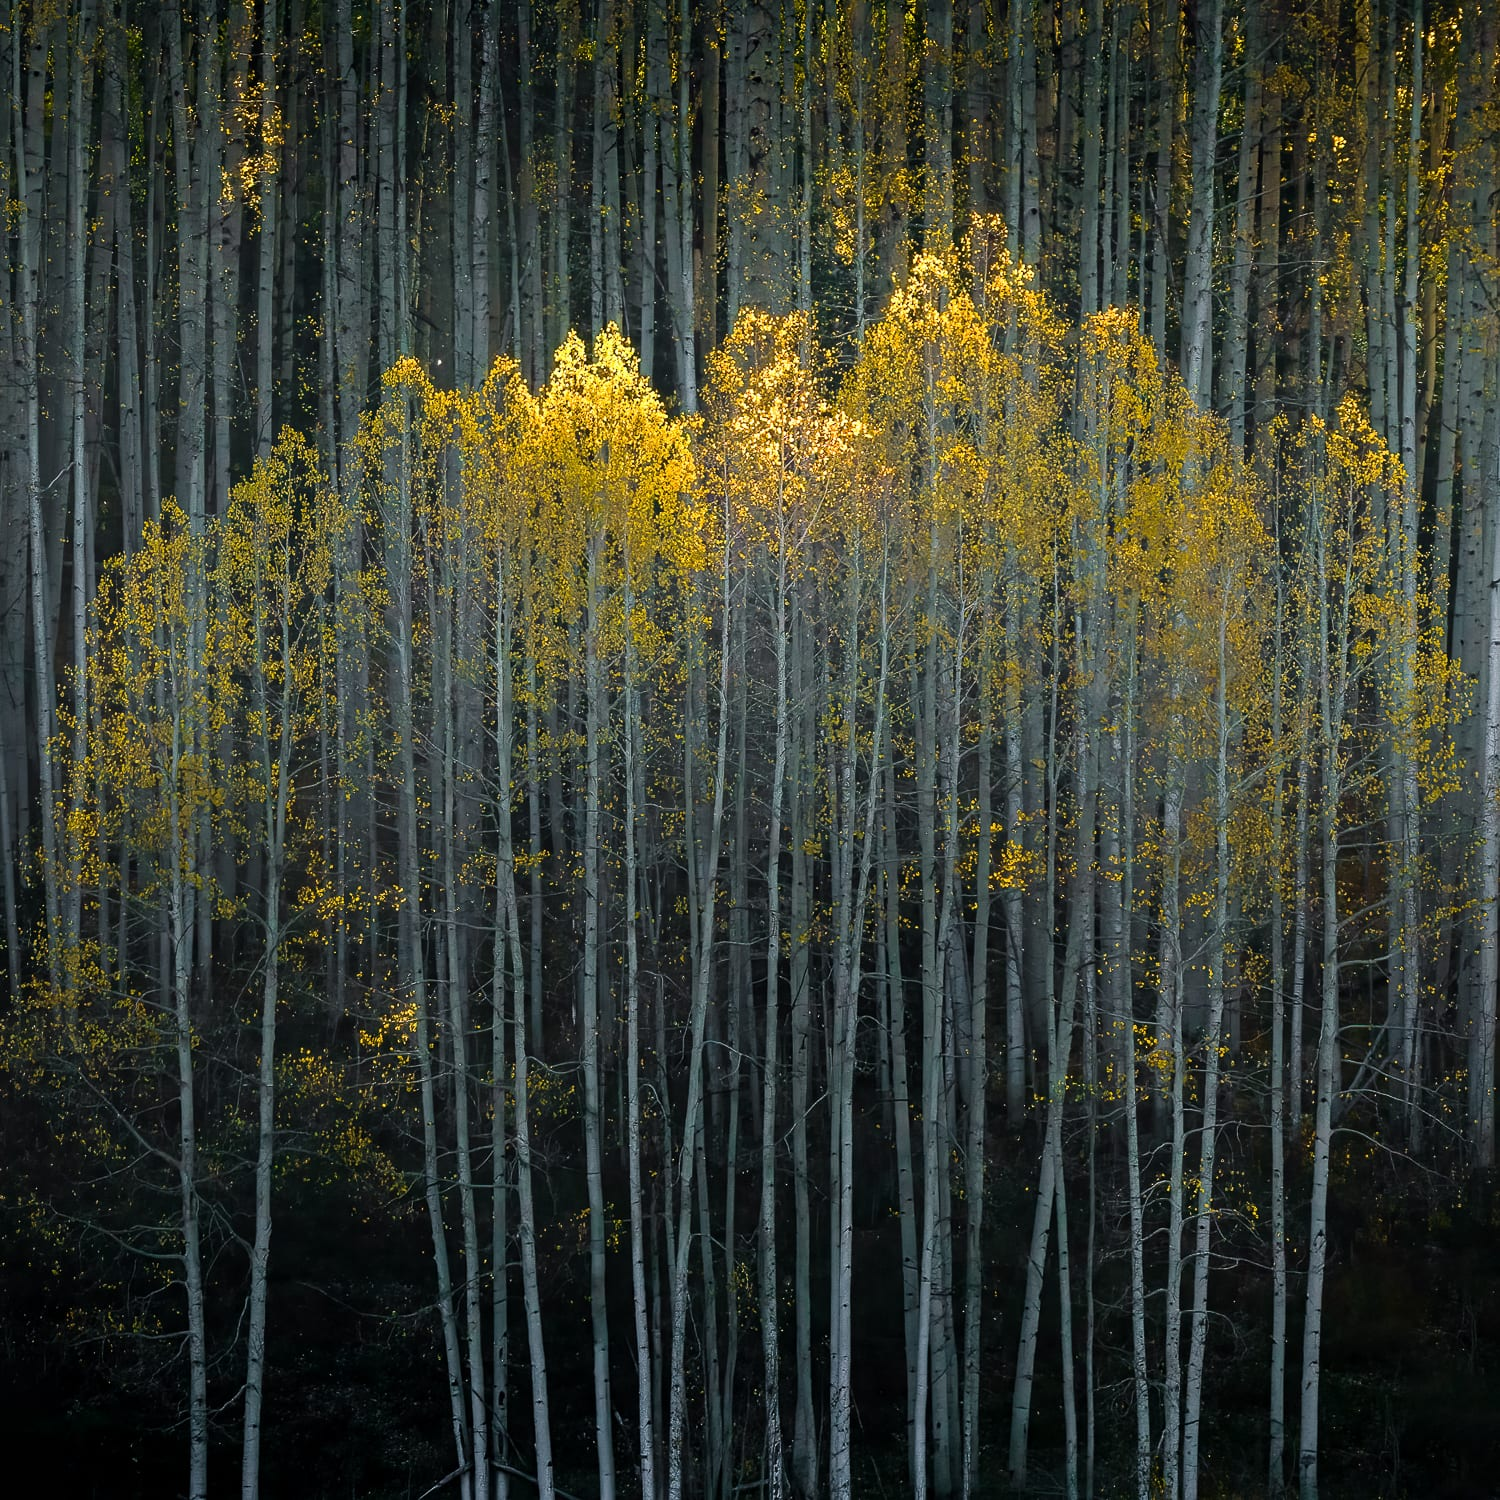 Light on the tips of yellow aspen trees